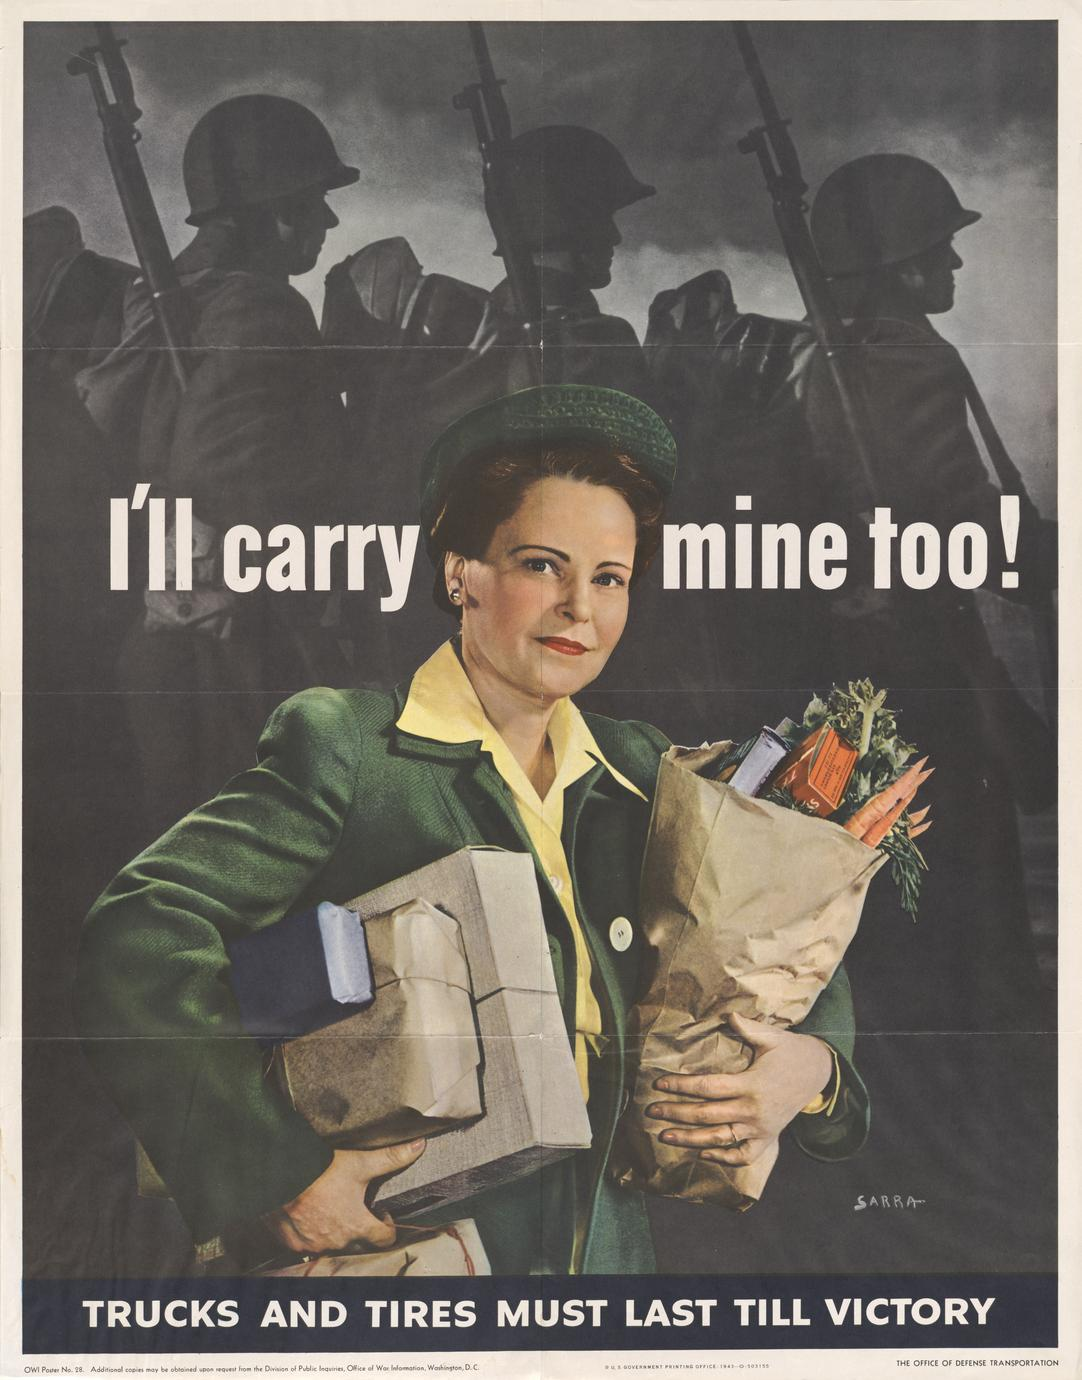 'I'll carry mine too!' war support poster